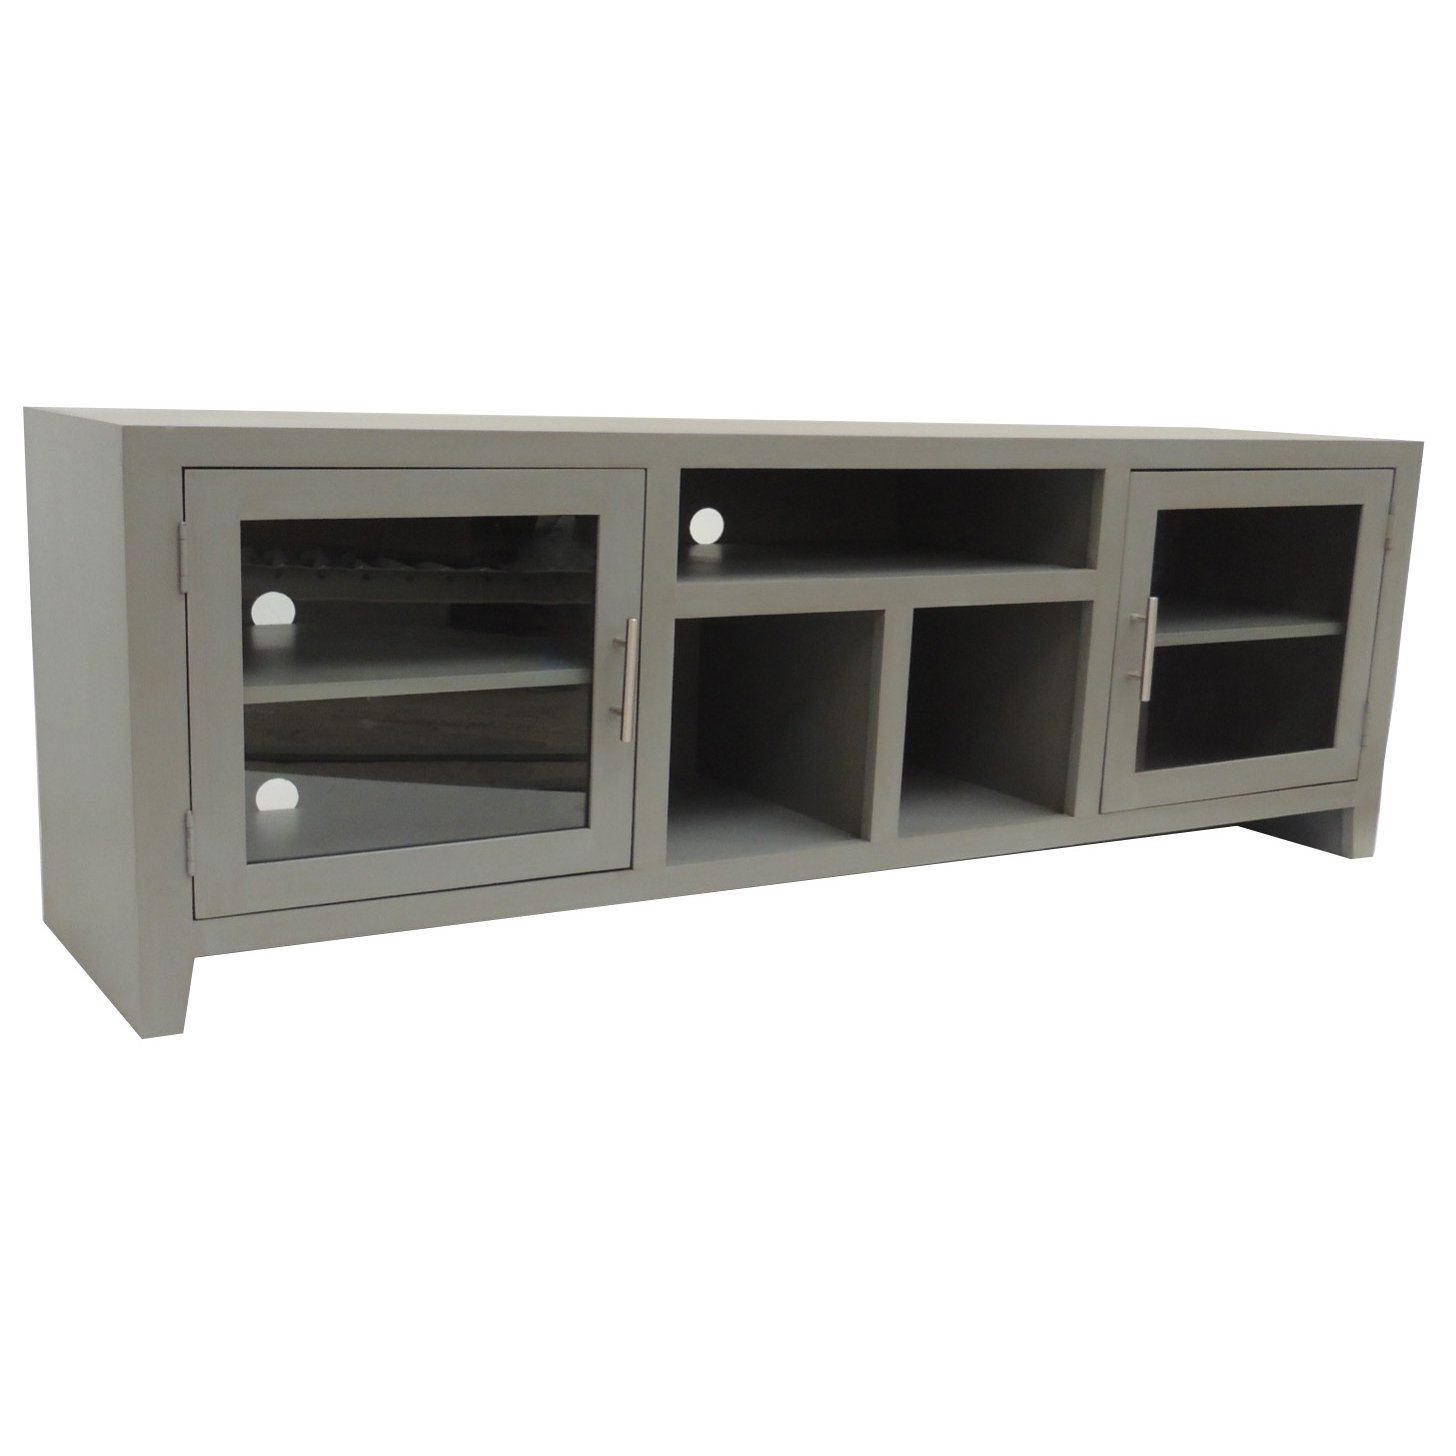 65 Inch Gray Tv Stand   Rc Willey Furniture Store With Regard To Delphi Grey Tv Stands (View 15 of 20)